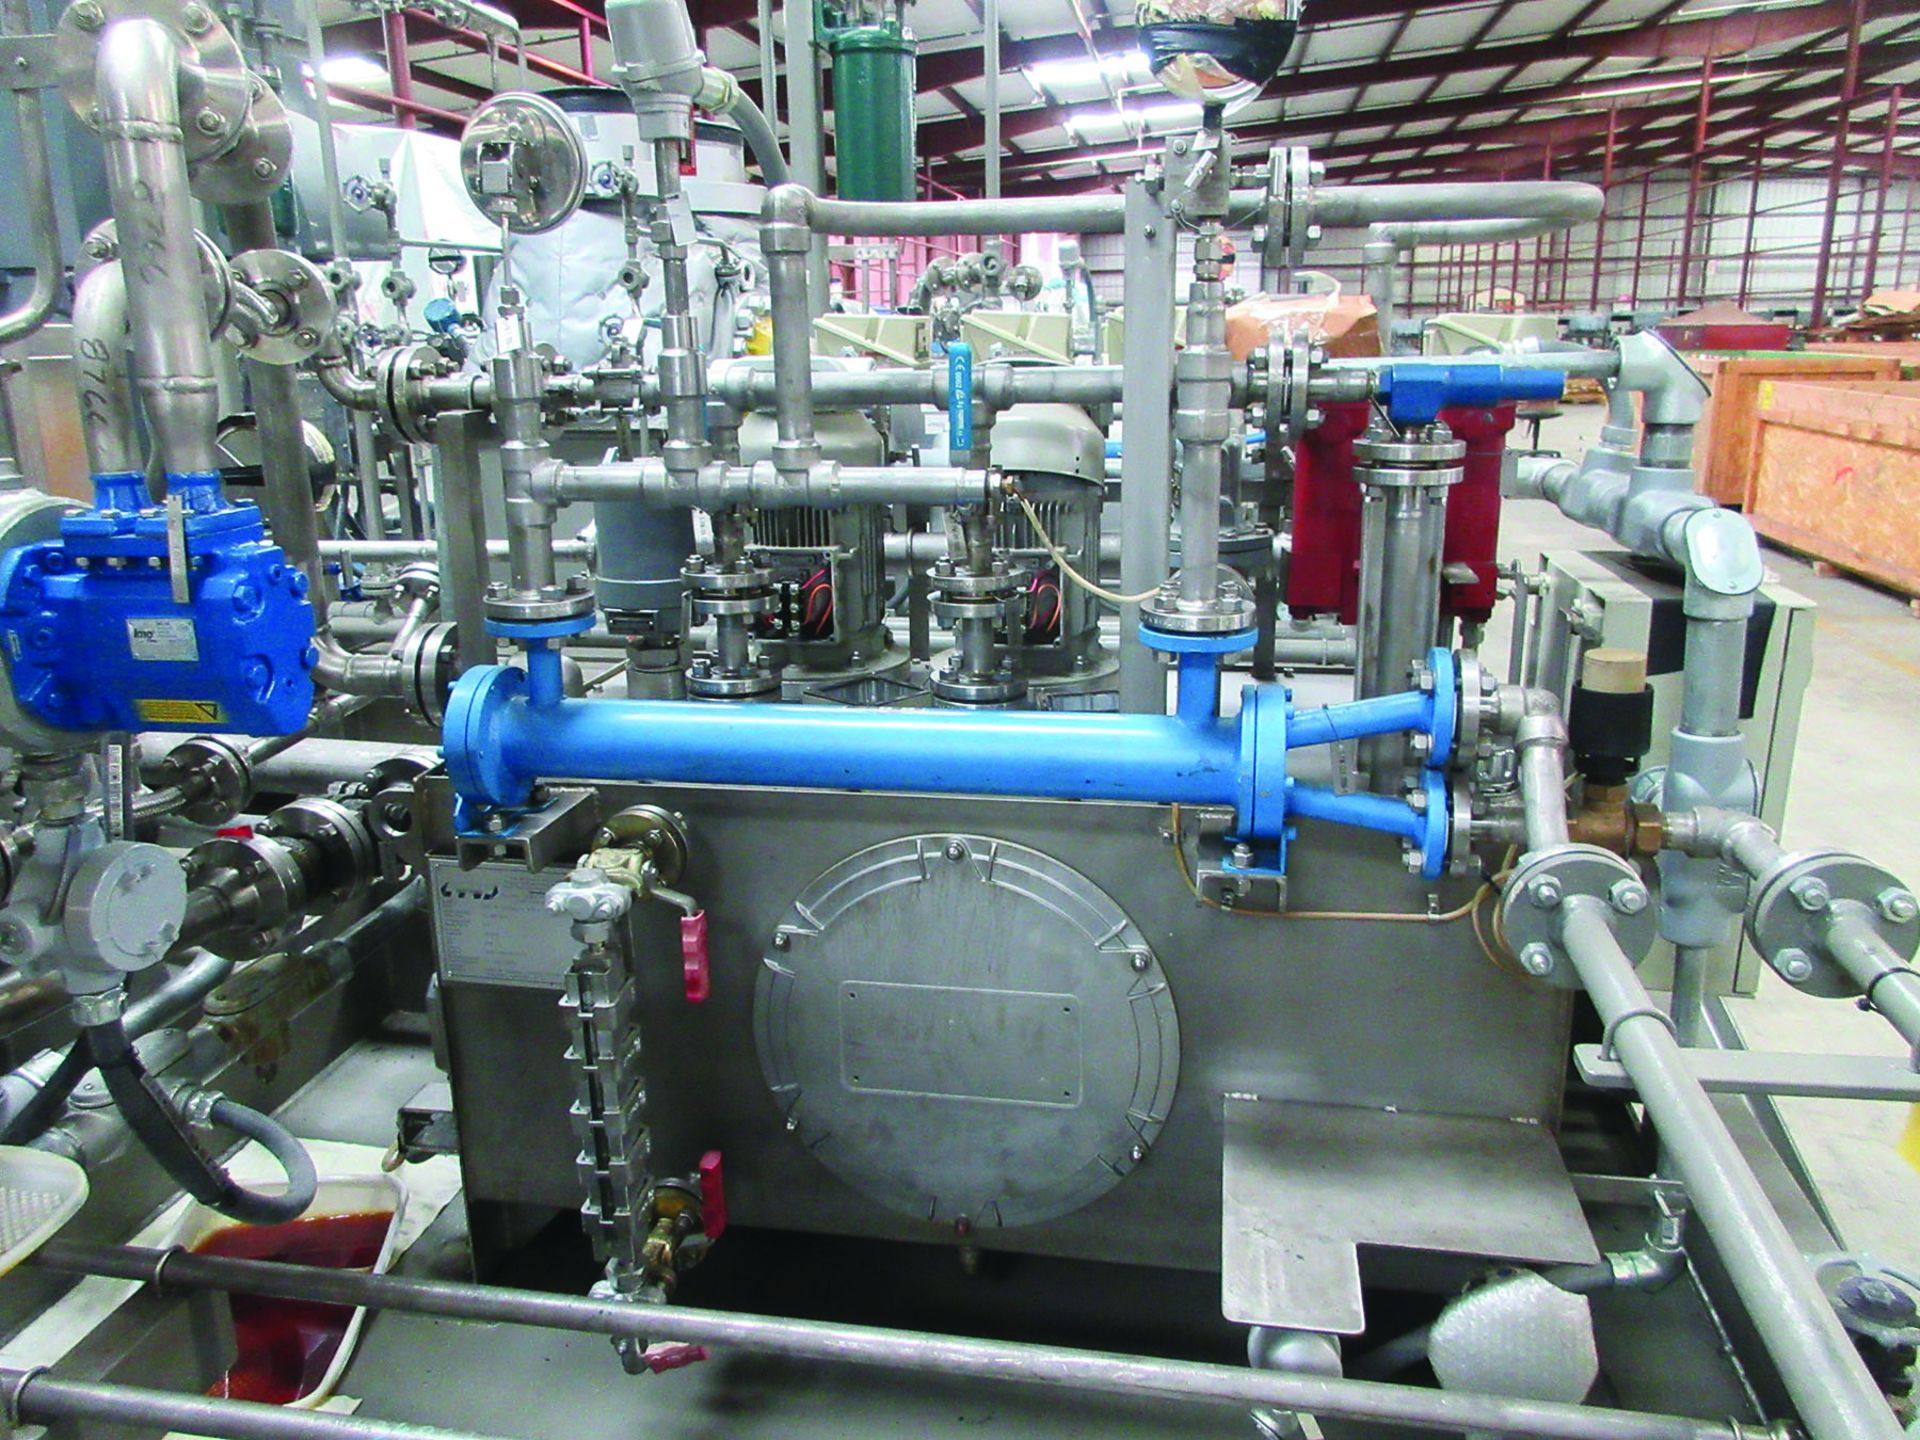 BOILER FEEDWATER BOOSTER PUMP SLED, GE 3,000 HP INDUCTION MOTOR 3585 RPM, 6600 VOLTS, 8313S FRAME, - Image 4 of 11